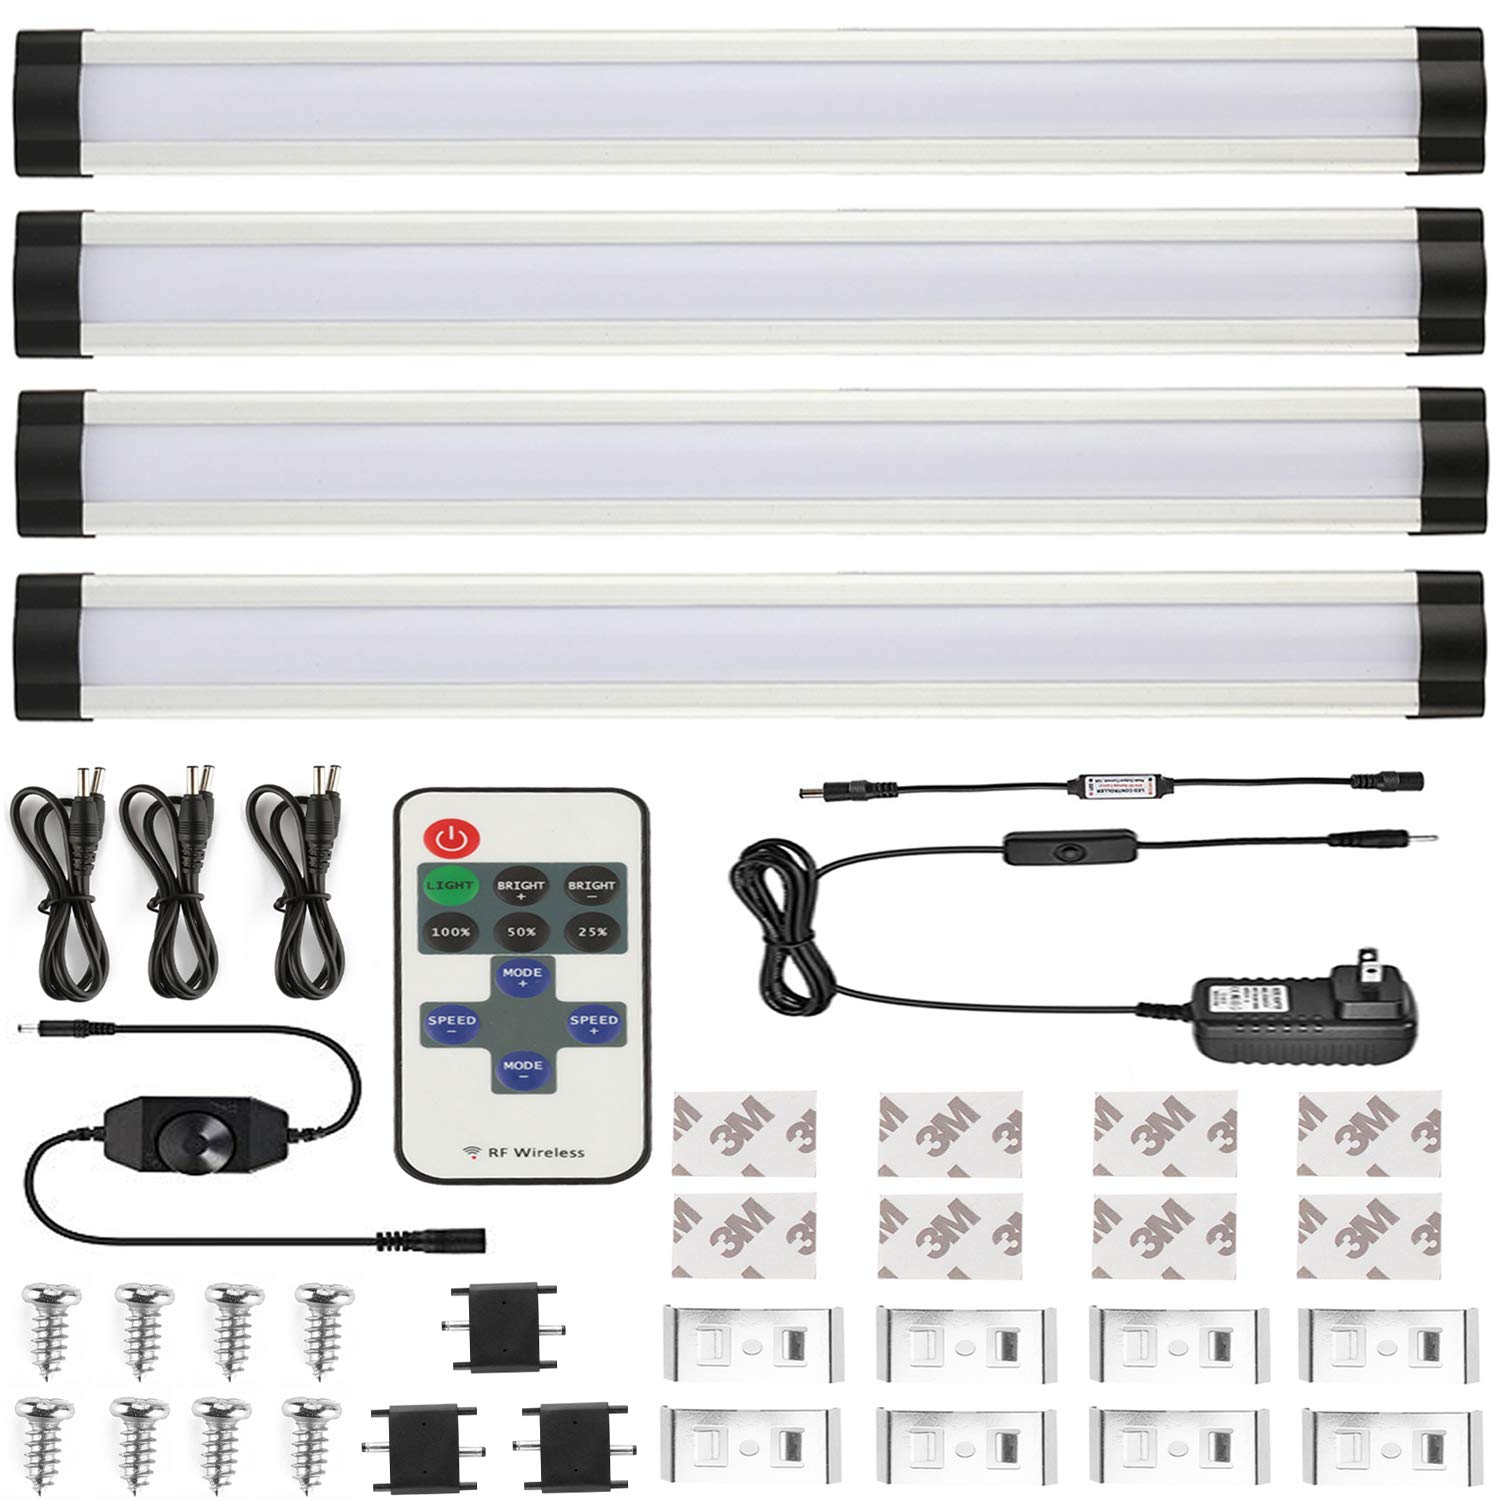 HuaXinV 12in IR Cordless Dimming LED Under Cabinet Lighting, 12W 3000K Warnwhite 1000LM, Milk Cover Led Strips,11key Remote Control (Warm White 4P) with 3M tape